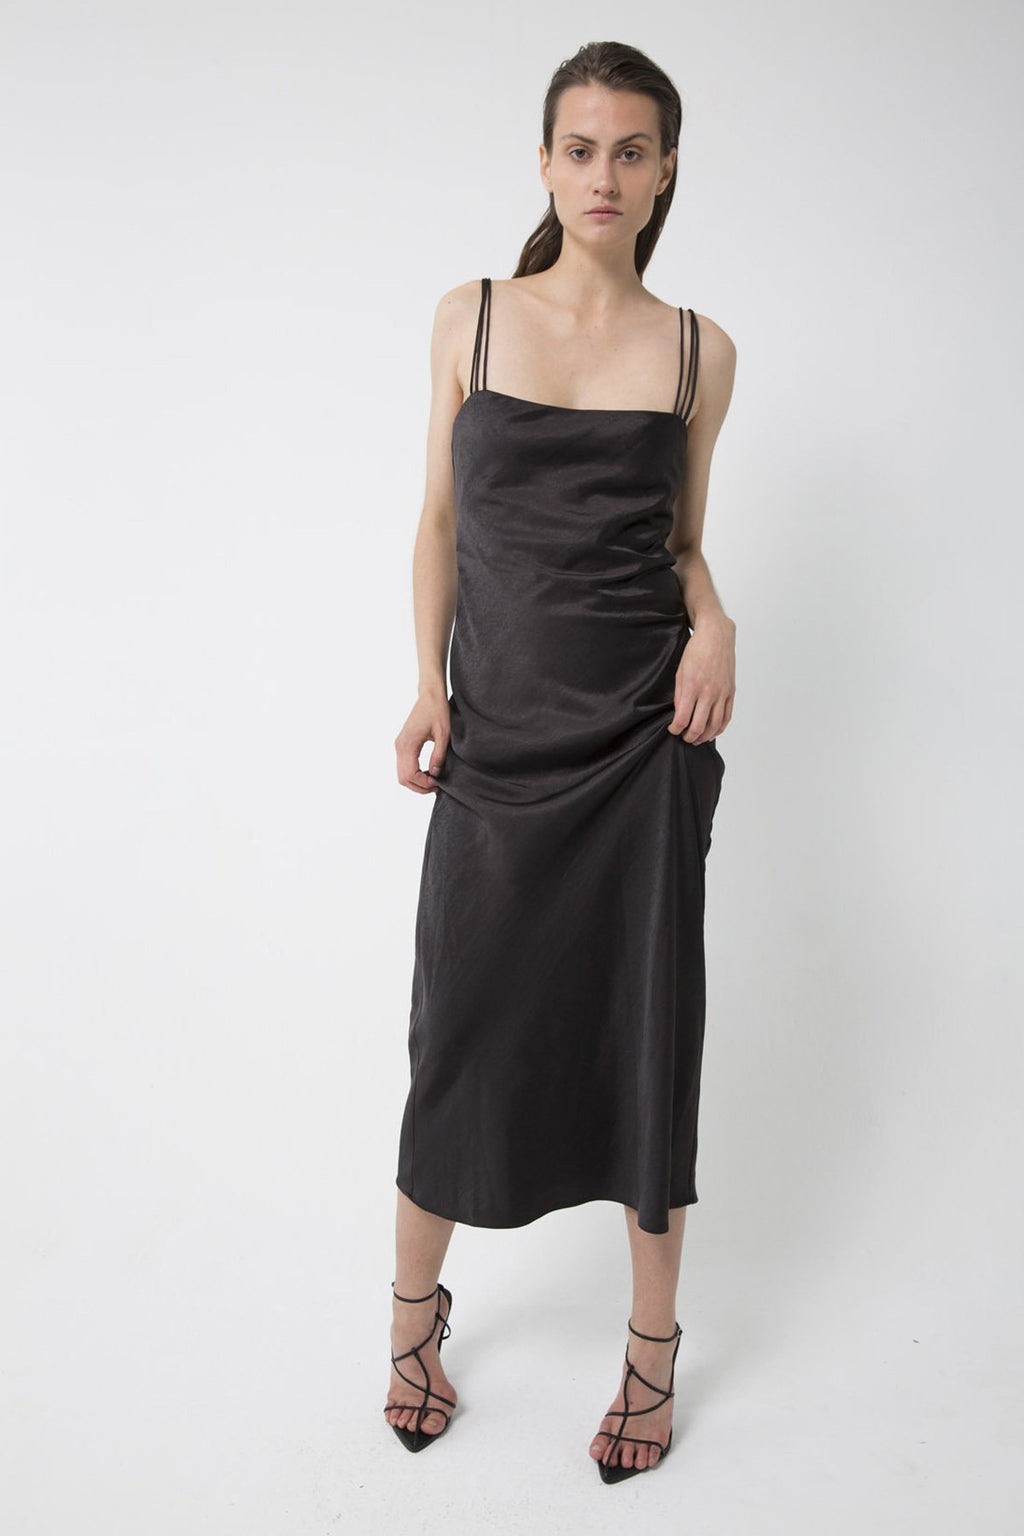 UNIKONCEPT lifestyle boutique: Model is wearing black, satin, midi third form slip dress. The 90's bias midi slip dress comes with 3 strap detail and square neckline.